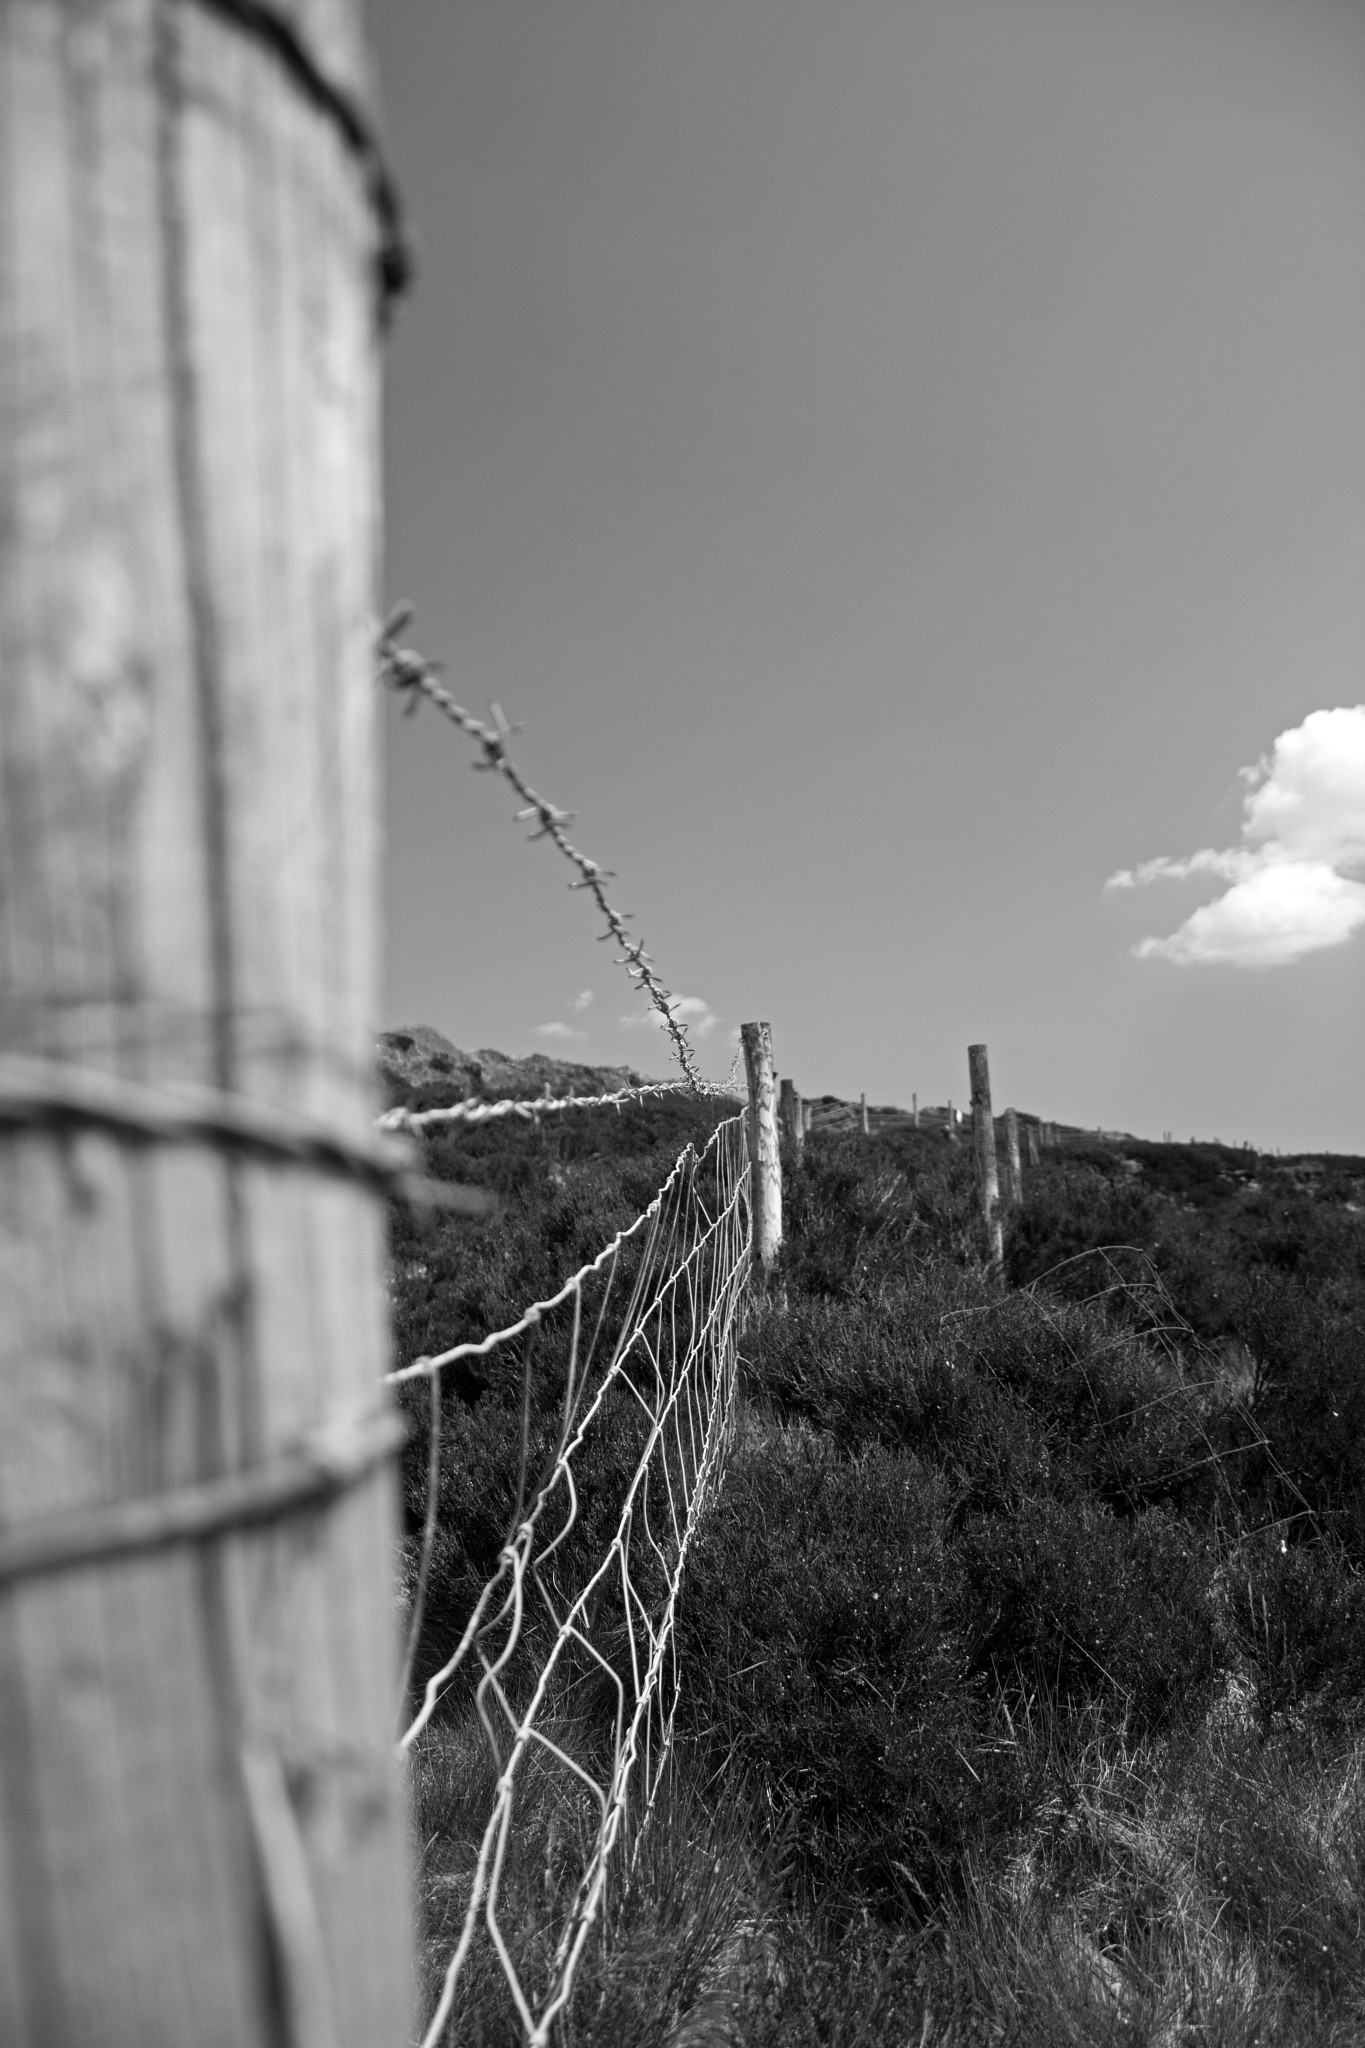 Wood and wire by ianjck